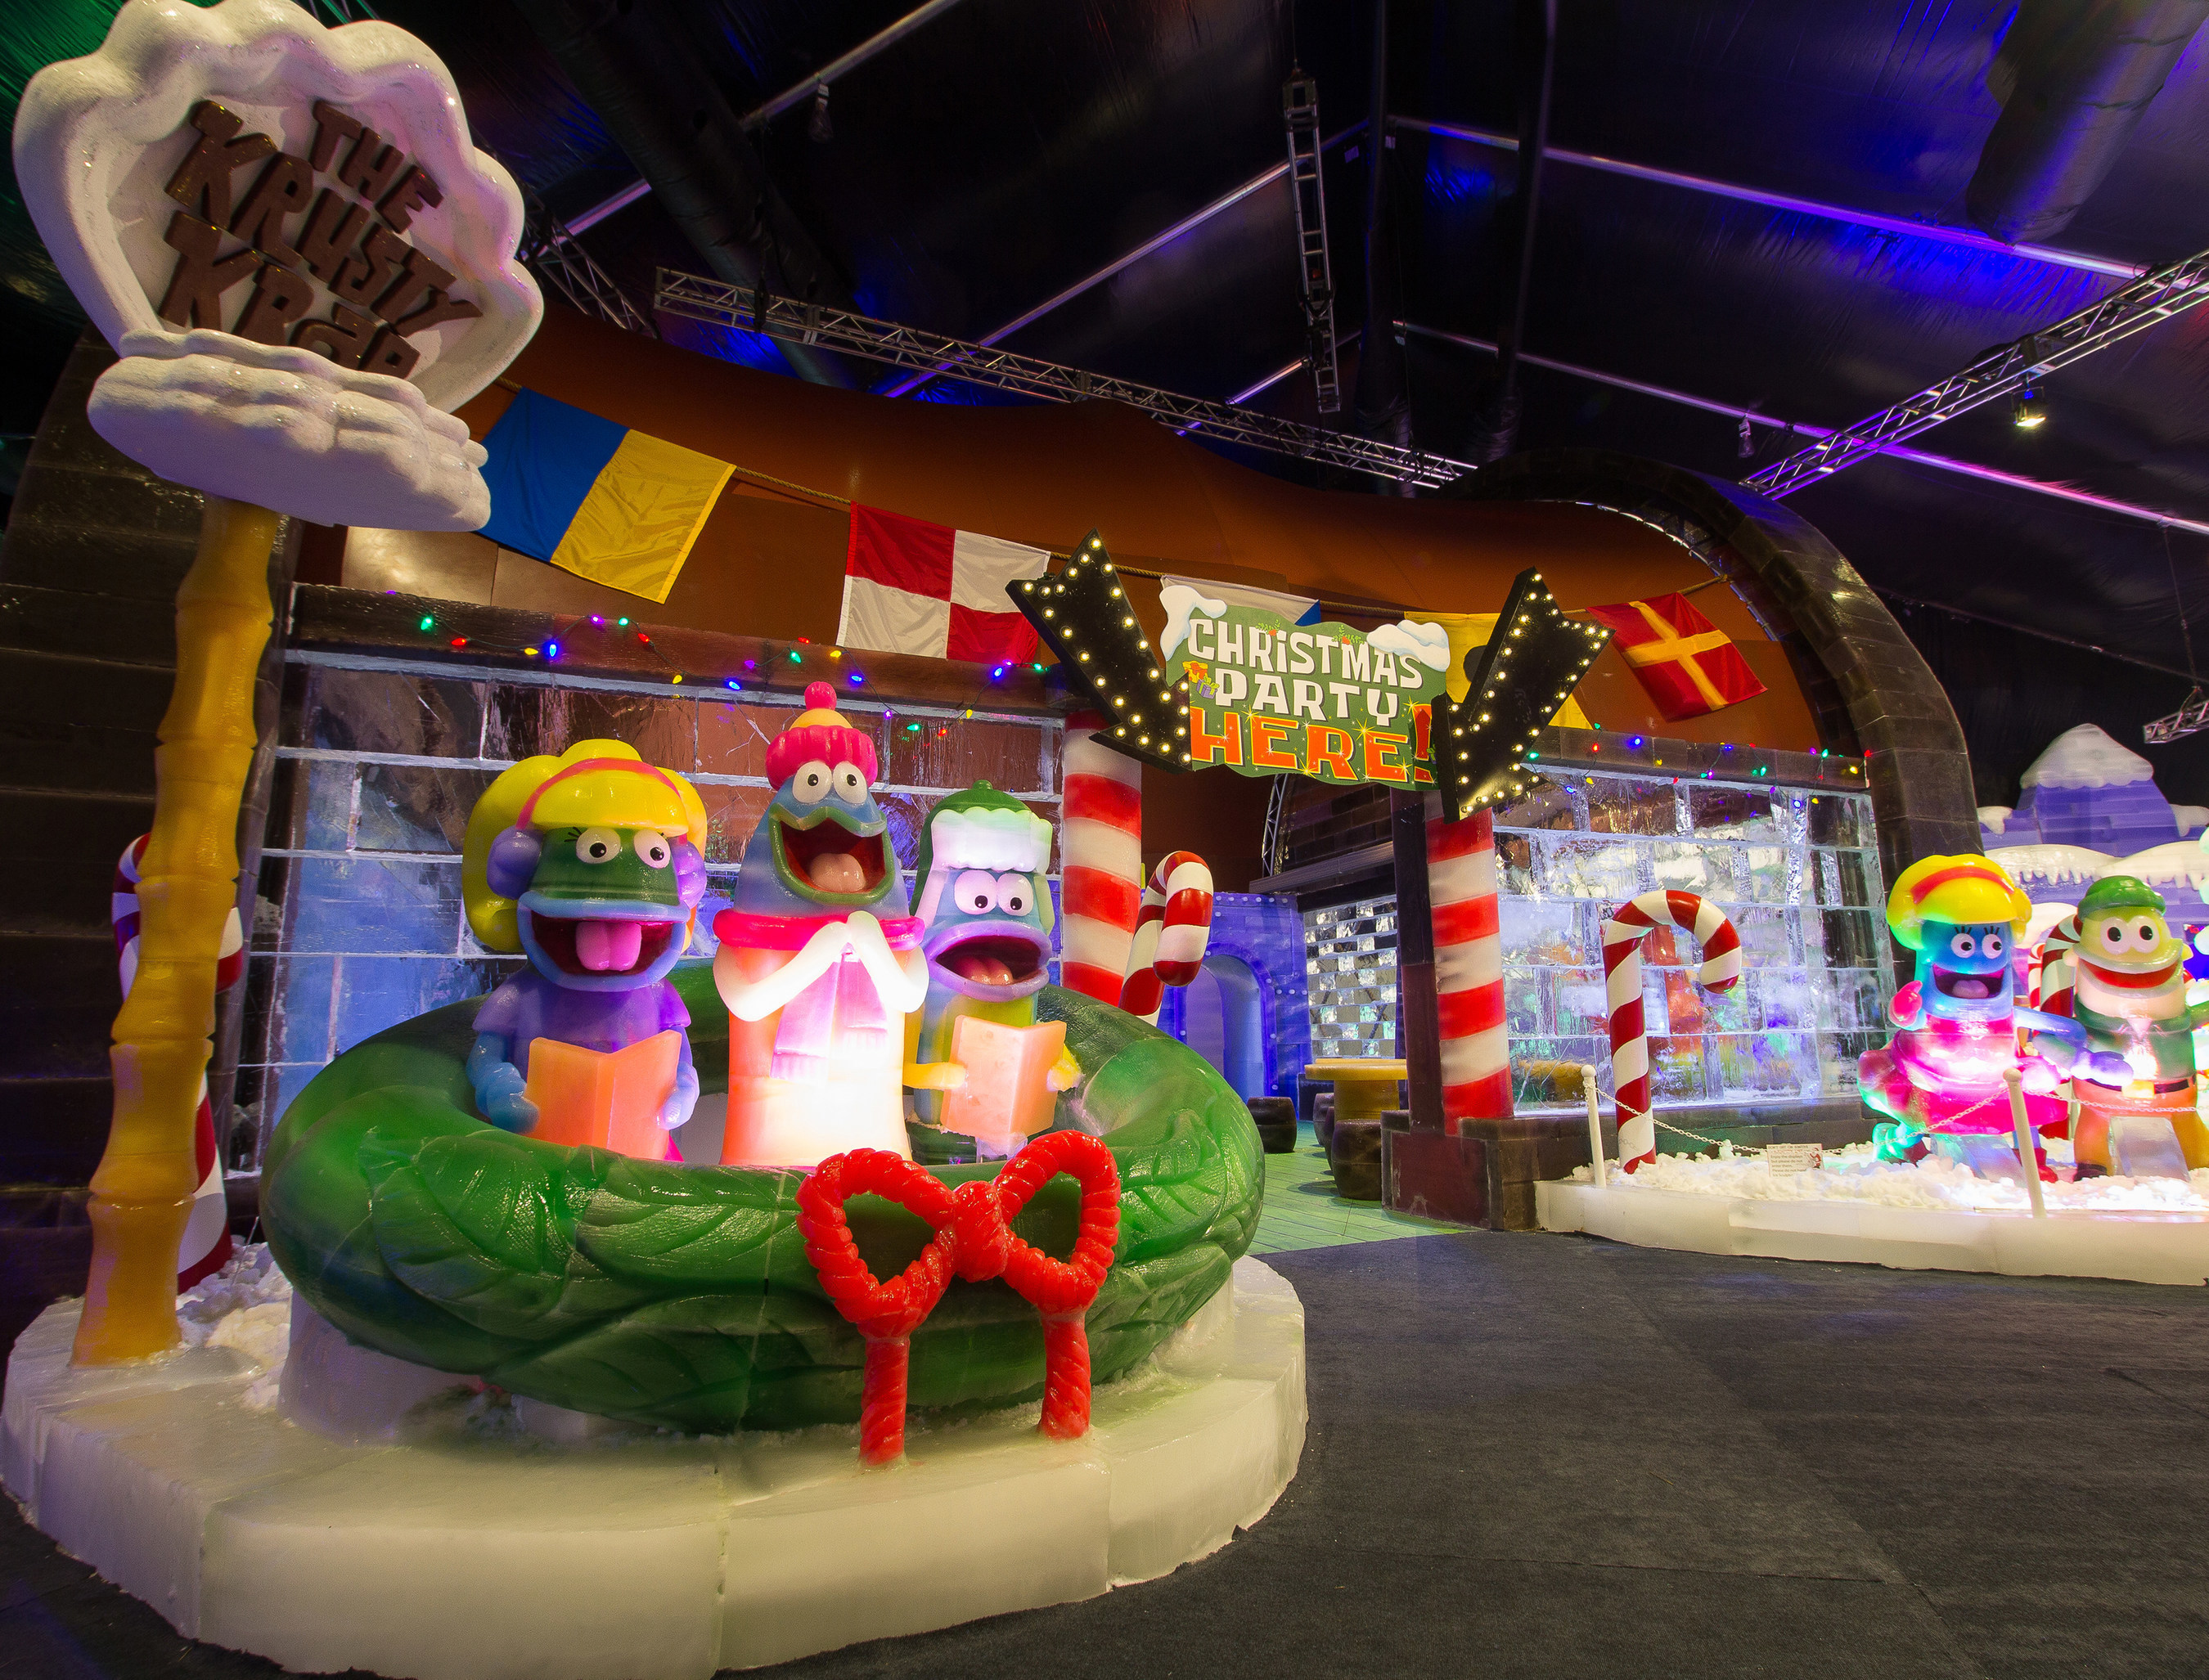 For the first time in the US, guests are able to enter the Krusty Krab made of ice at Moody Gardens ICE LAND: Ice Sculptures with SpongeBob SquarePants that opened Saturday in Galveston, TX